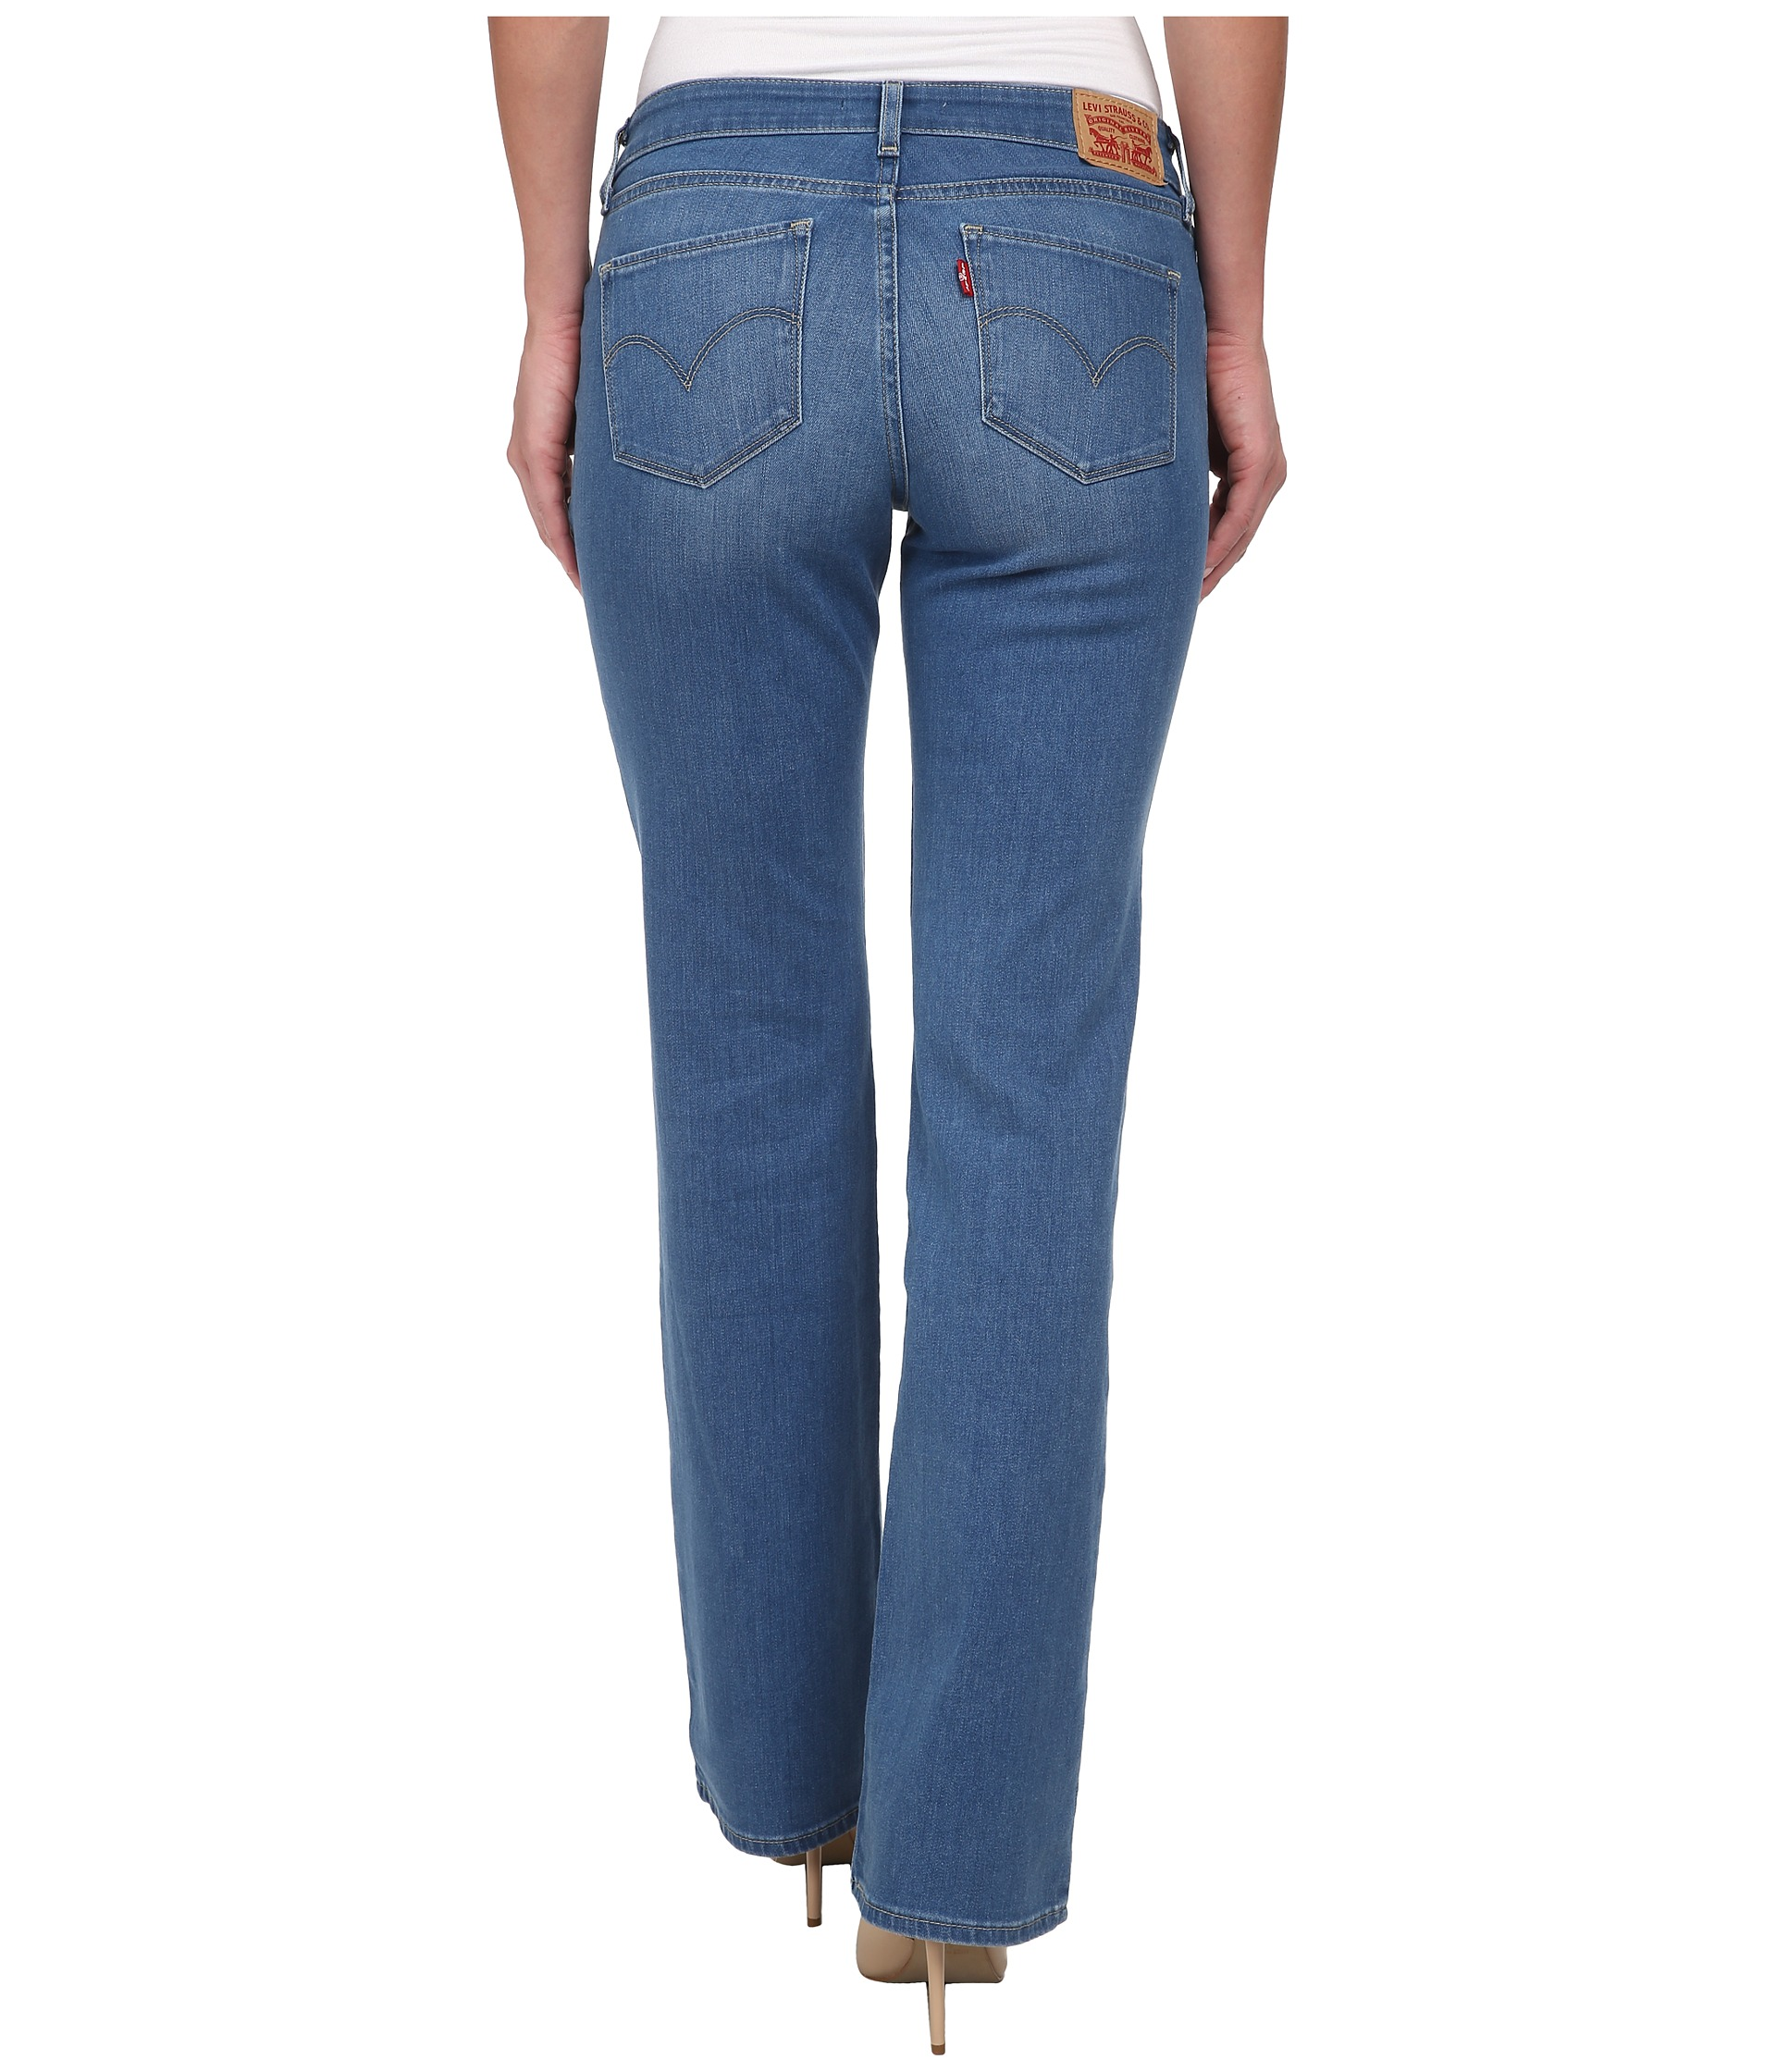 Look fashionable and trendy while maintaining movability with women's bootcut jeans from Lee. Shop our wide range of bootcut jeans online today.